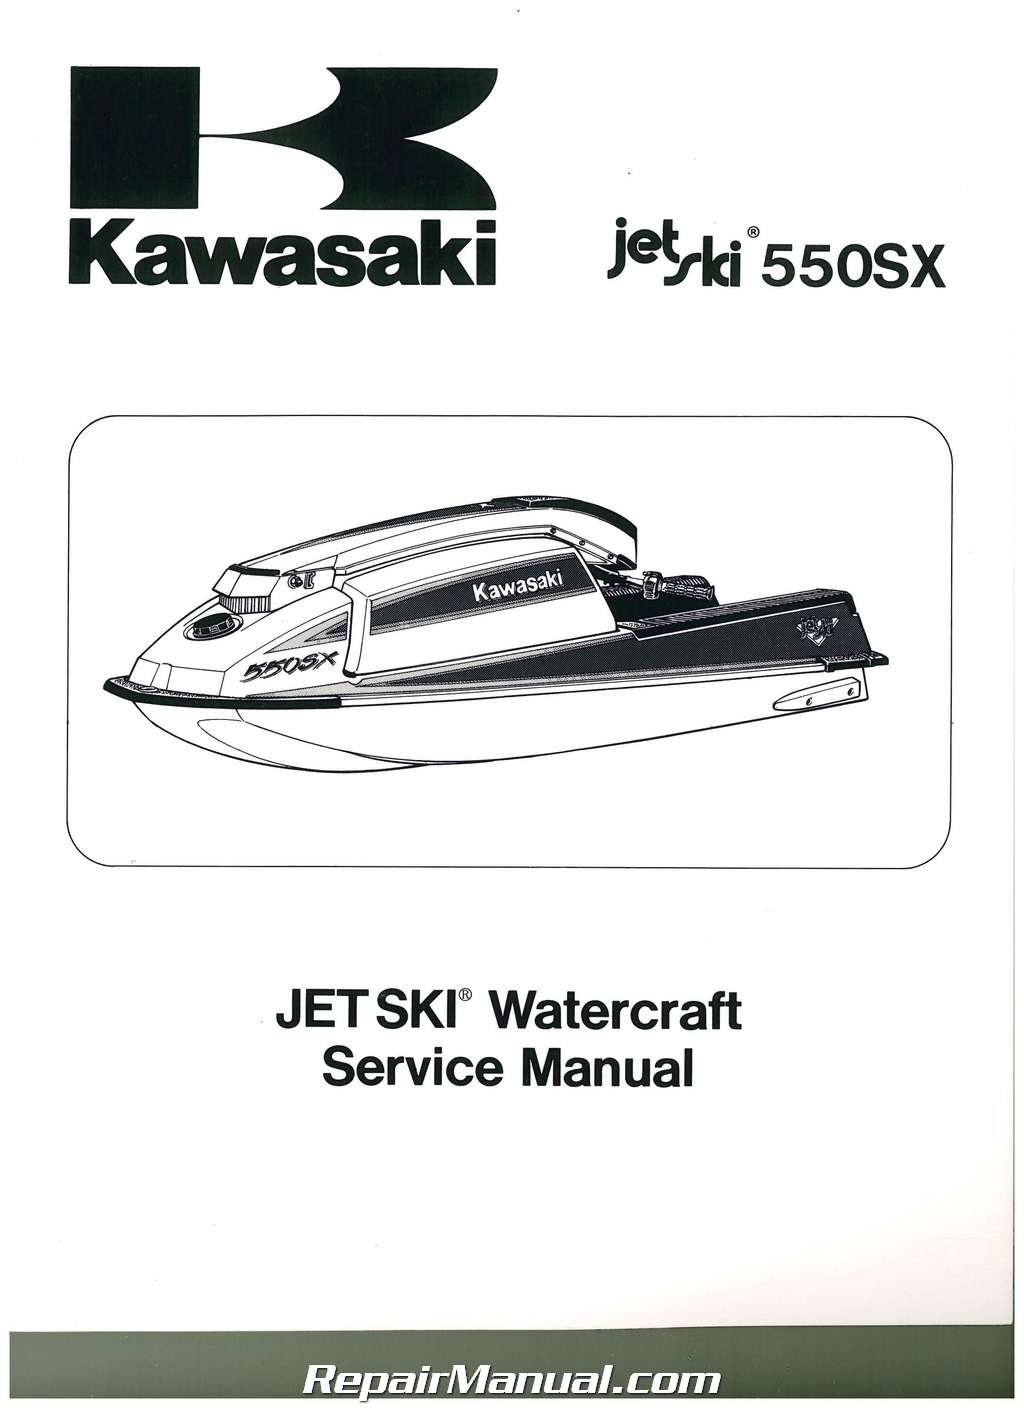 ... maintenance specifications for 1990-1993 Kawasaki JET SKI JS550-B  watercrafts. doc01149220160303143553_021.jpg ...